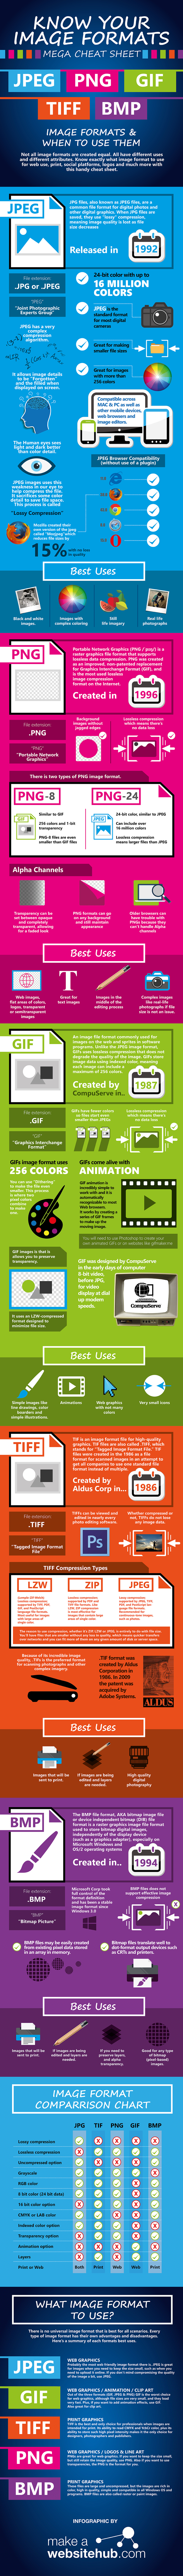 Know Your Image Formats Mega Cheat Sheet